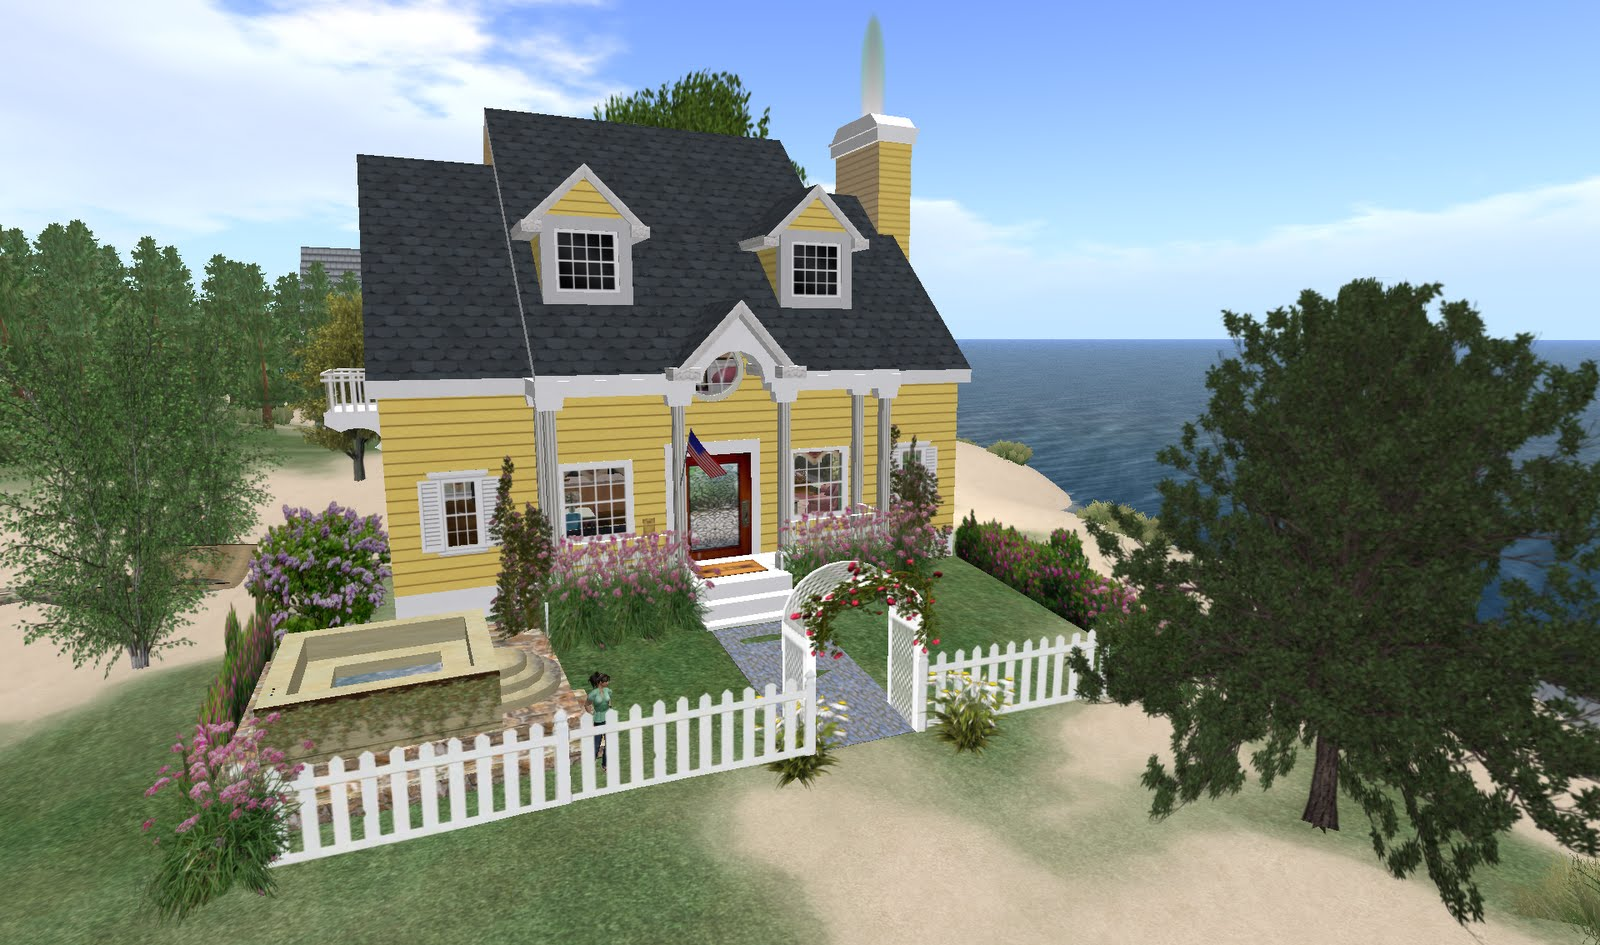 Jeanne S Folly Yellow Houses With White Picket Fences